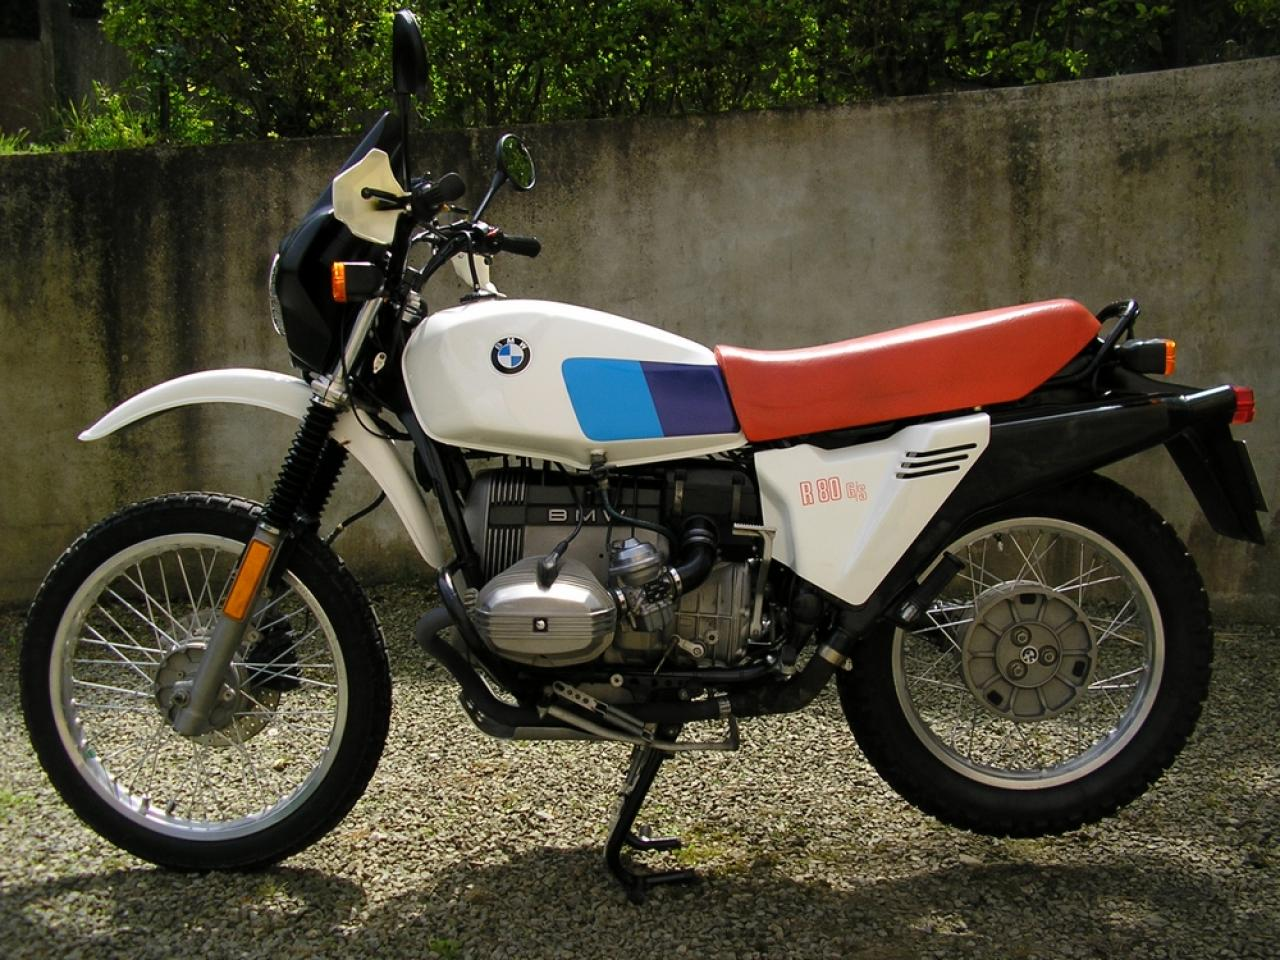 BMW R80GS 1989 images #6020